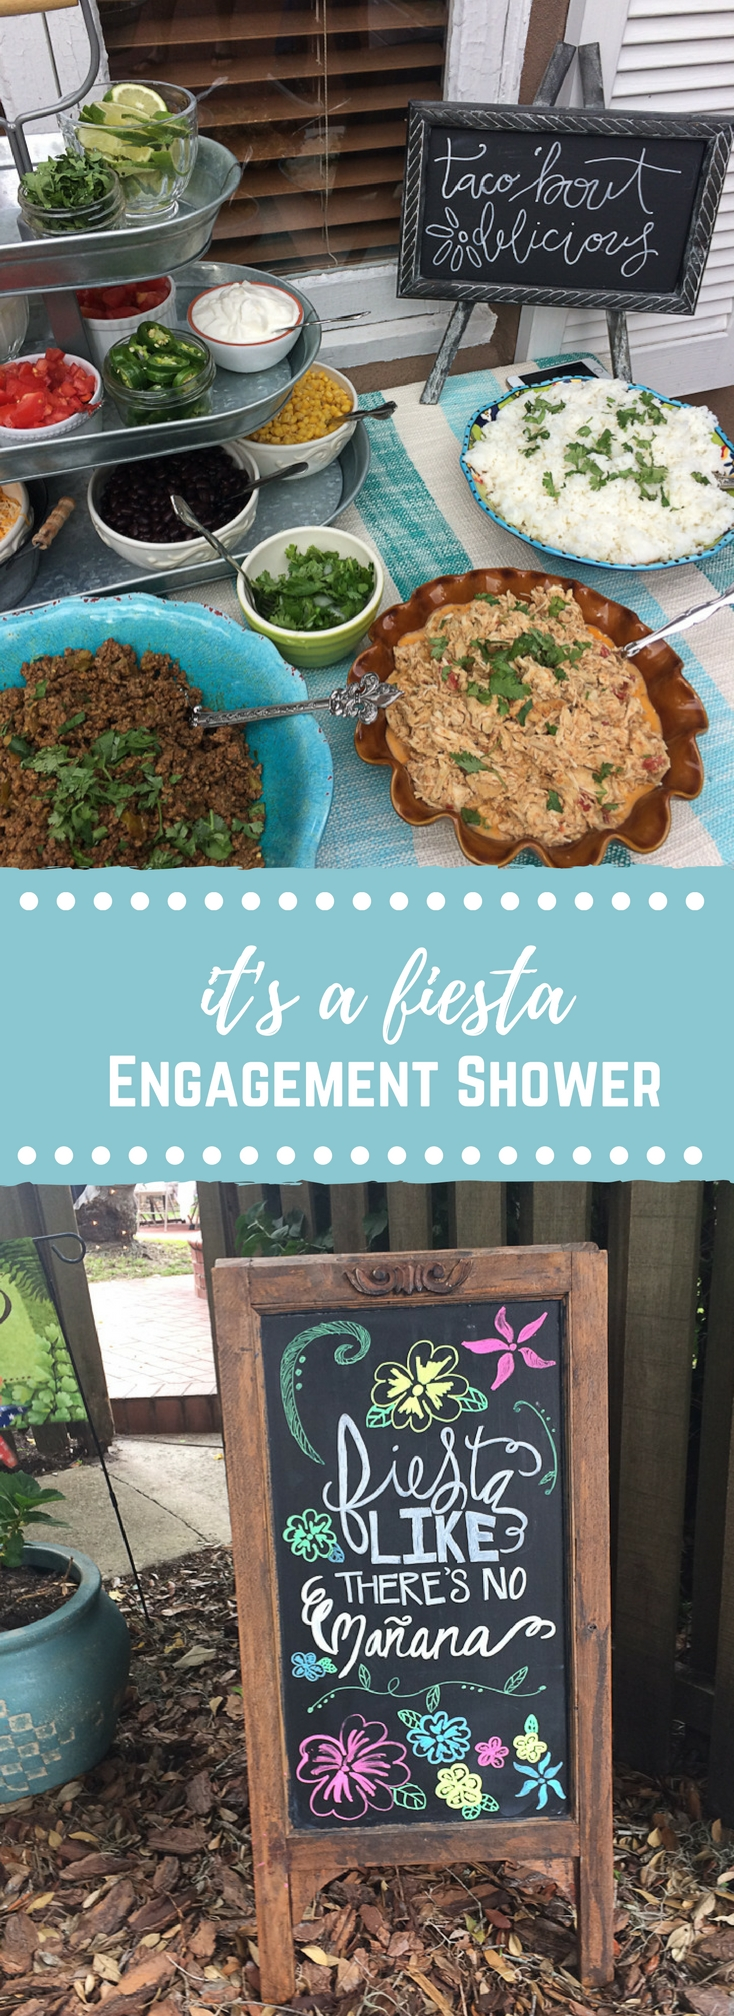 It's a fiesta... engagement shower! If you're throwing a couples shower this is a fun theme. Everyone loves chips, salsa, and sangria!